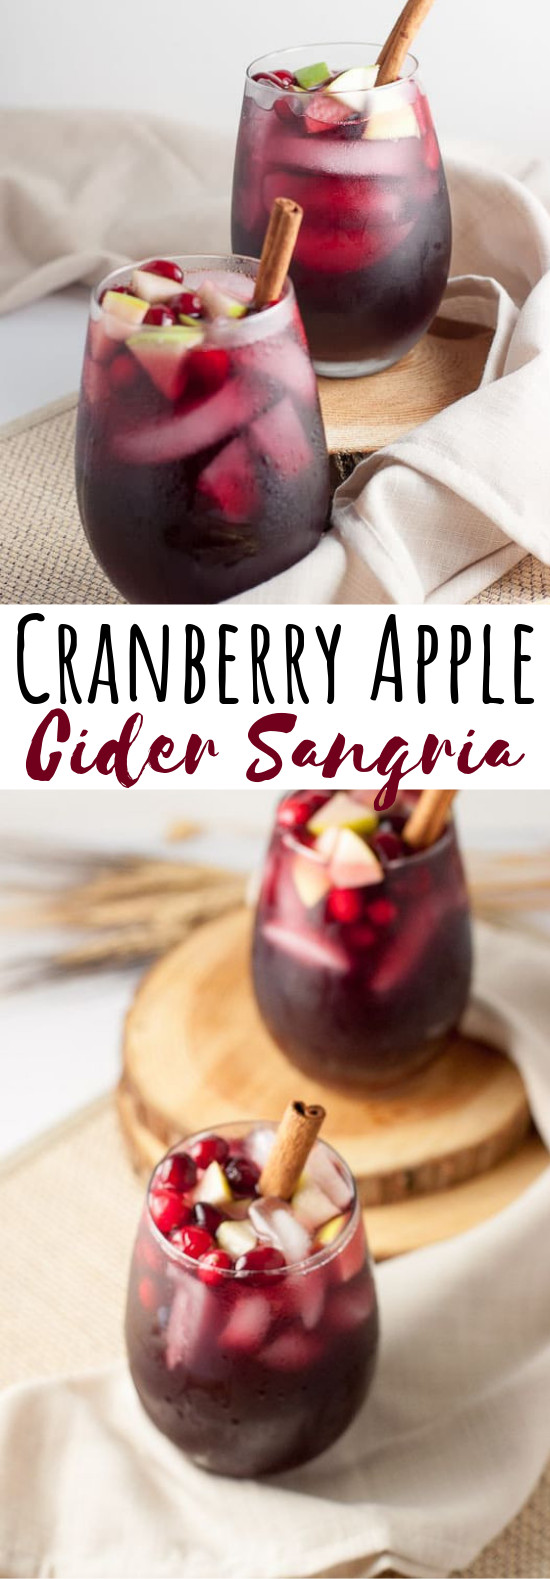 Cranberry Apple Cider Sangria #drinks #cocktails #applecidersangriarecipe